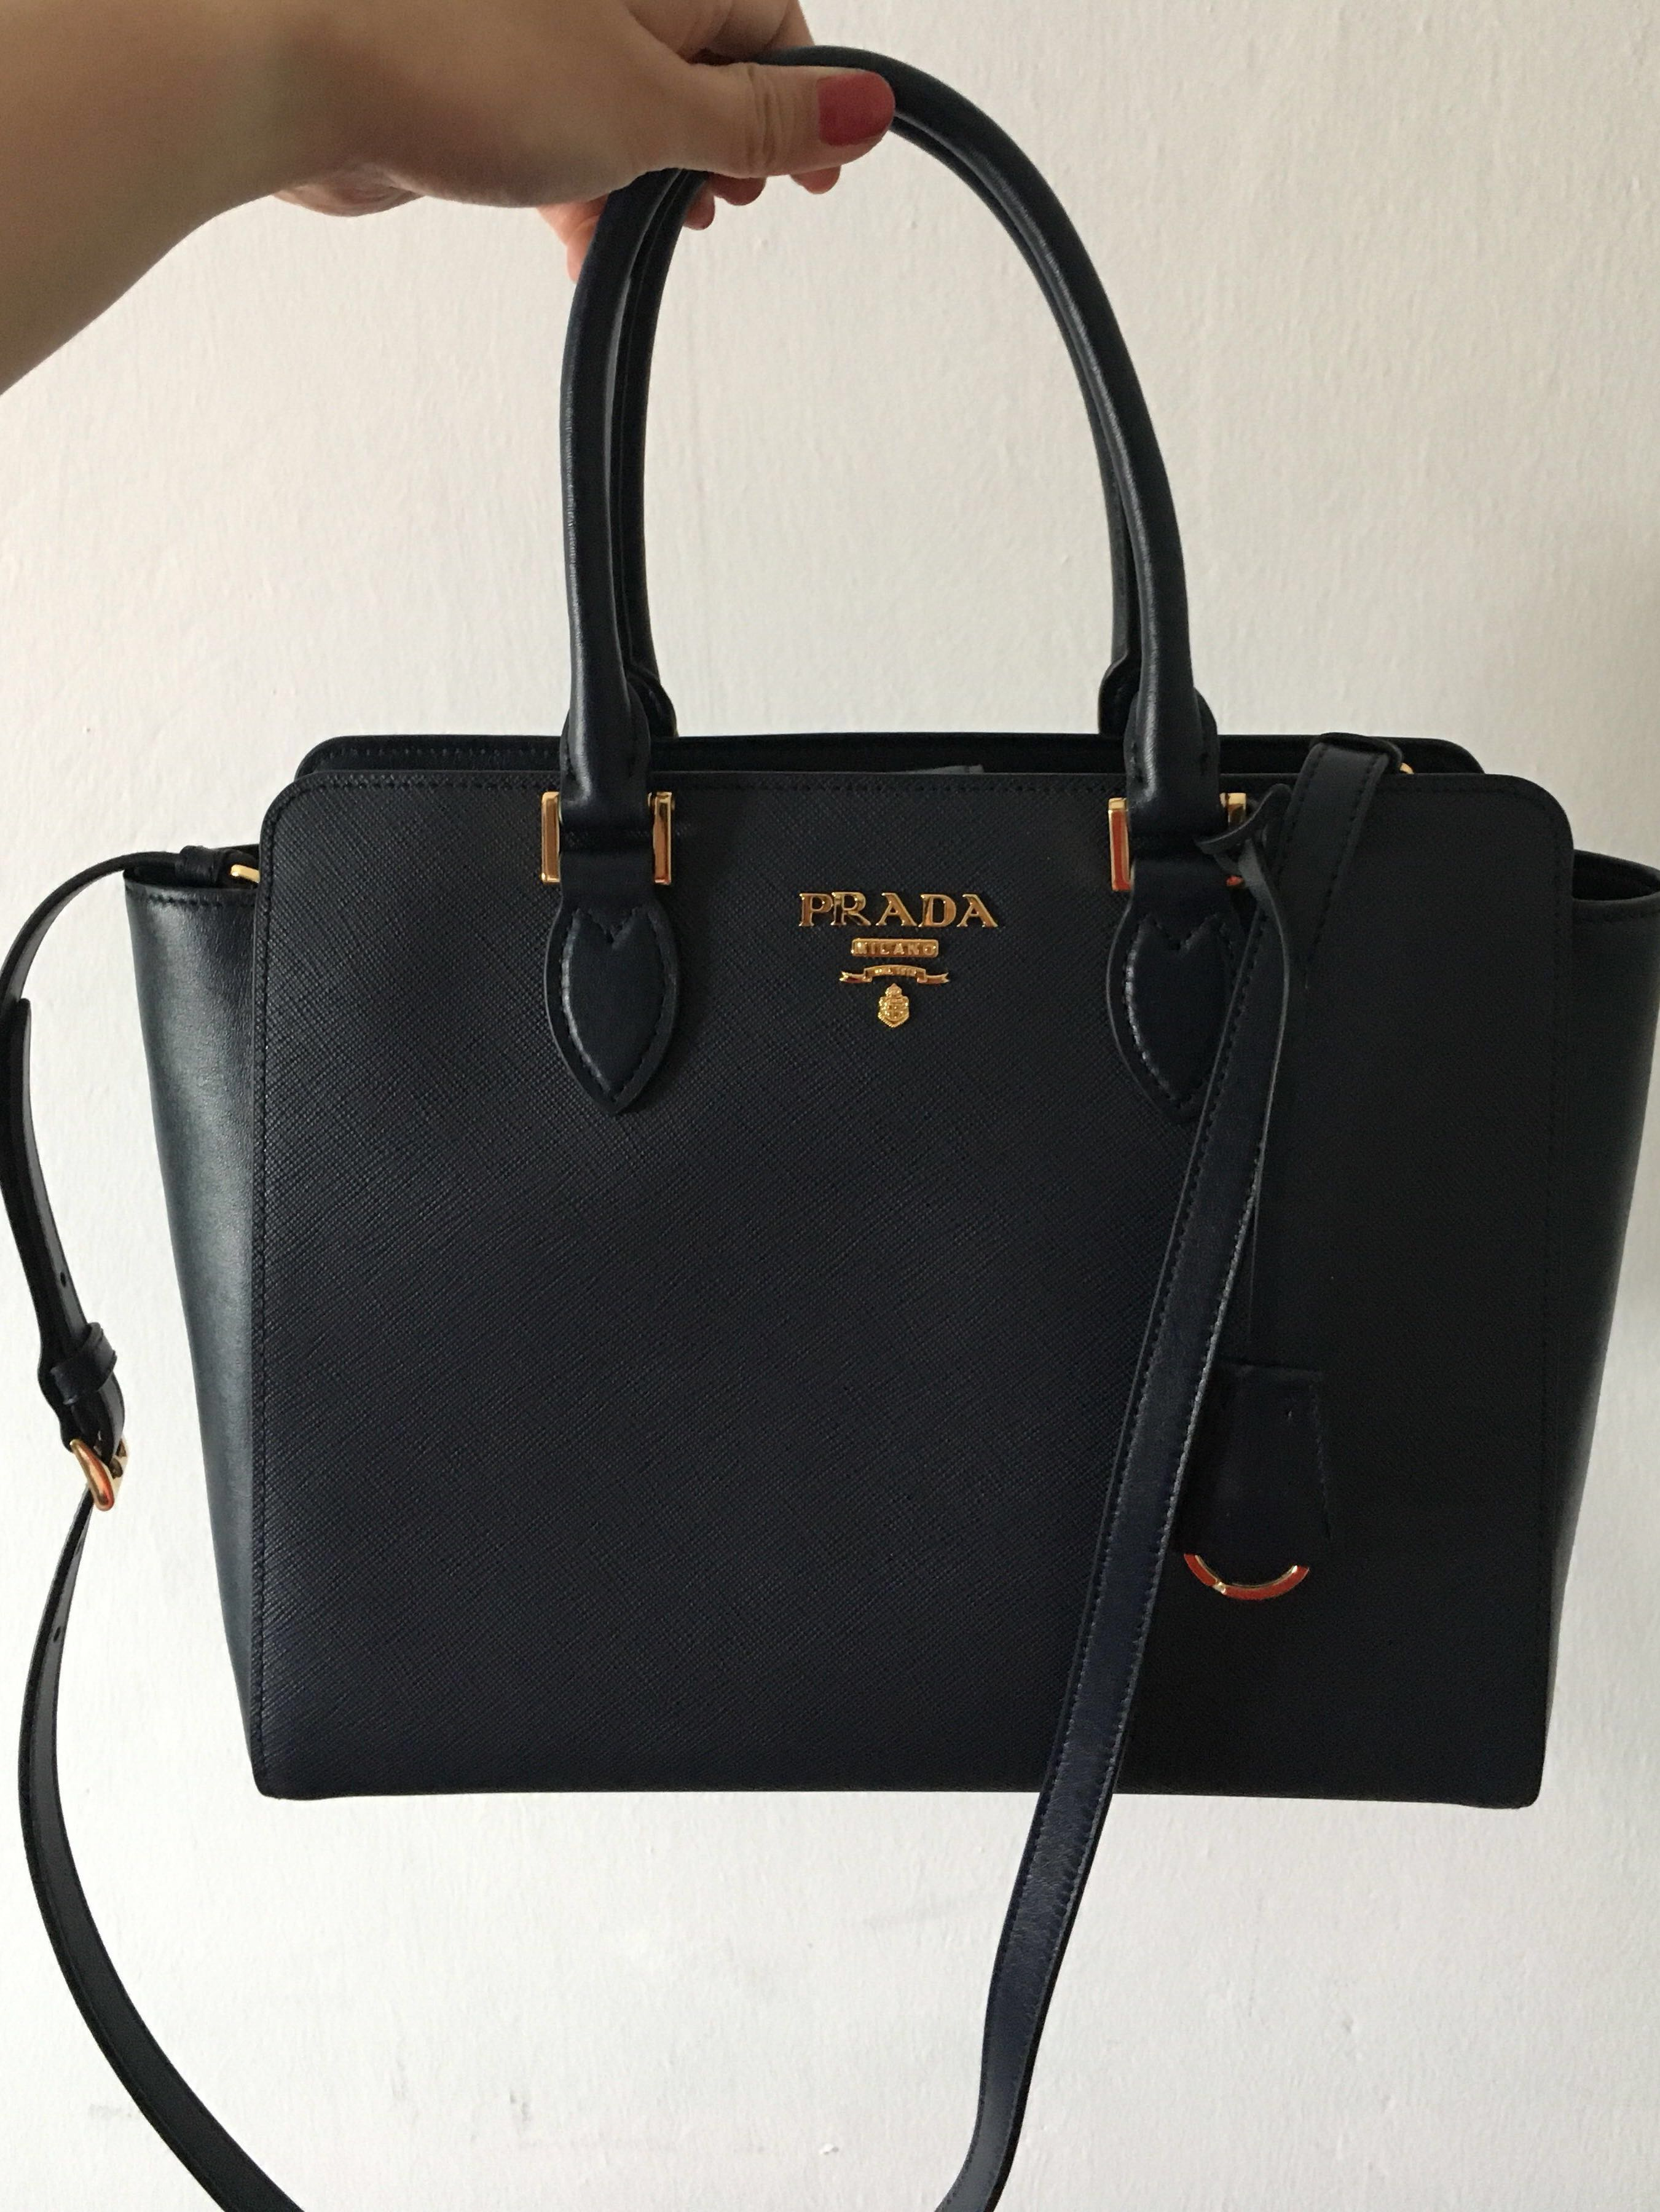 683ac720a80912 BN Authentic Prada Saffiano Leather Sling Bag with Handles in Navy ...